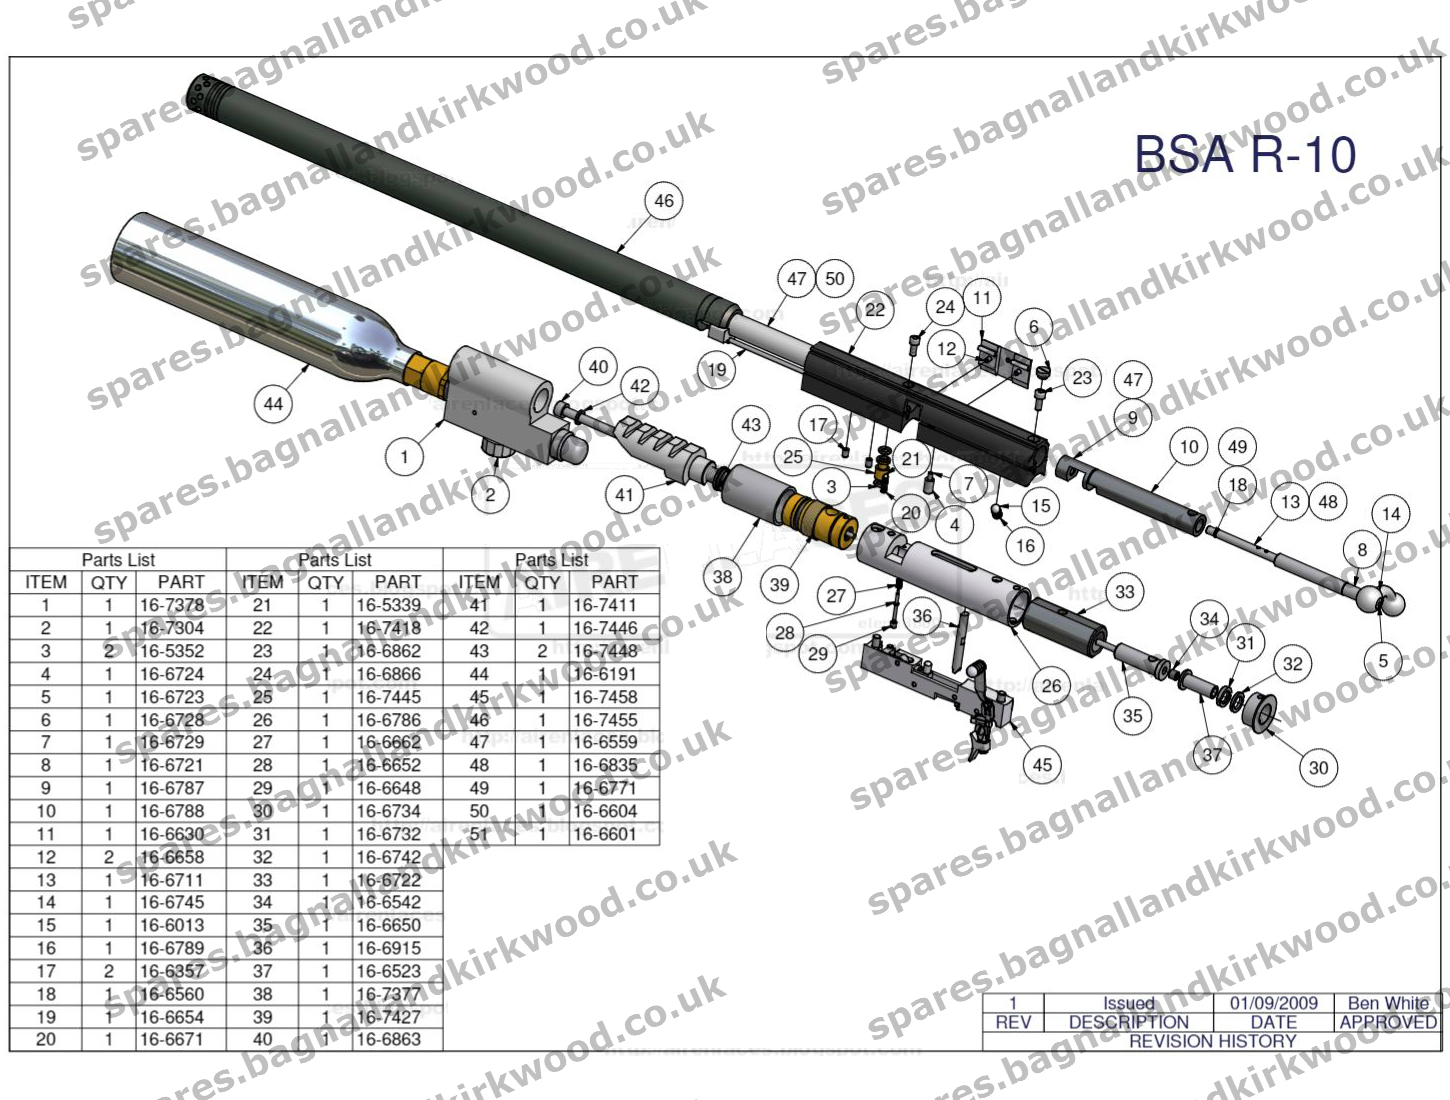 Daisy Powerline 15xt Parts Diagram Pictures to Pin on